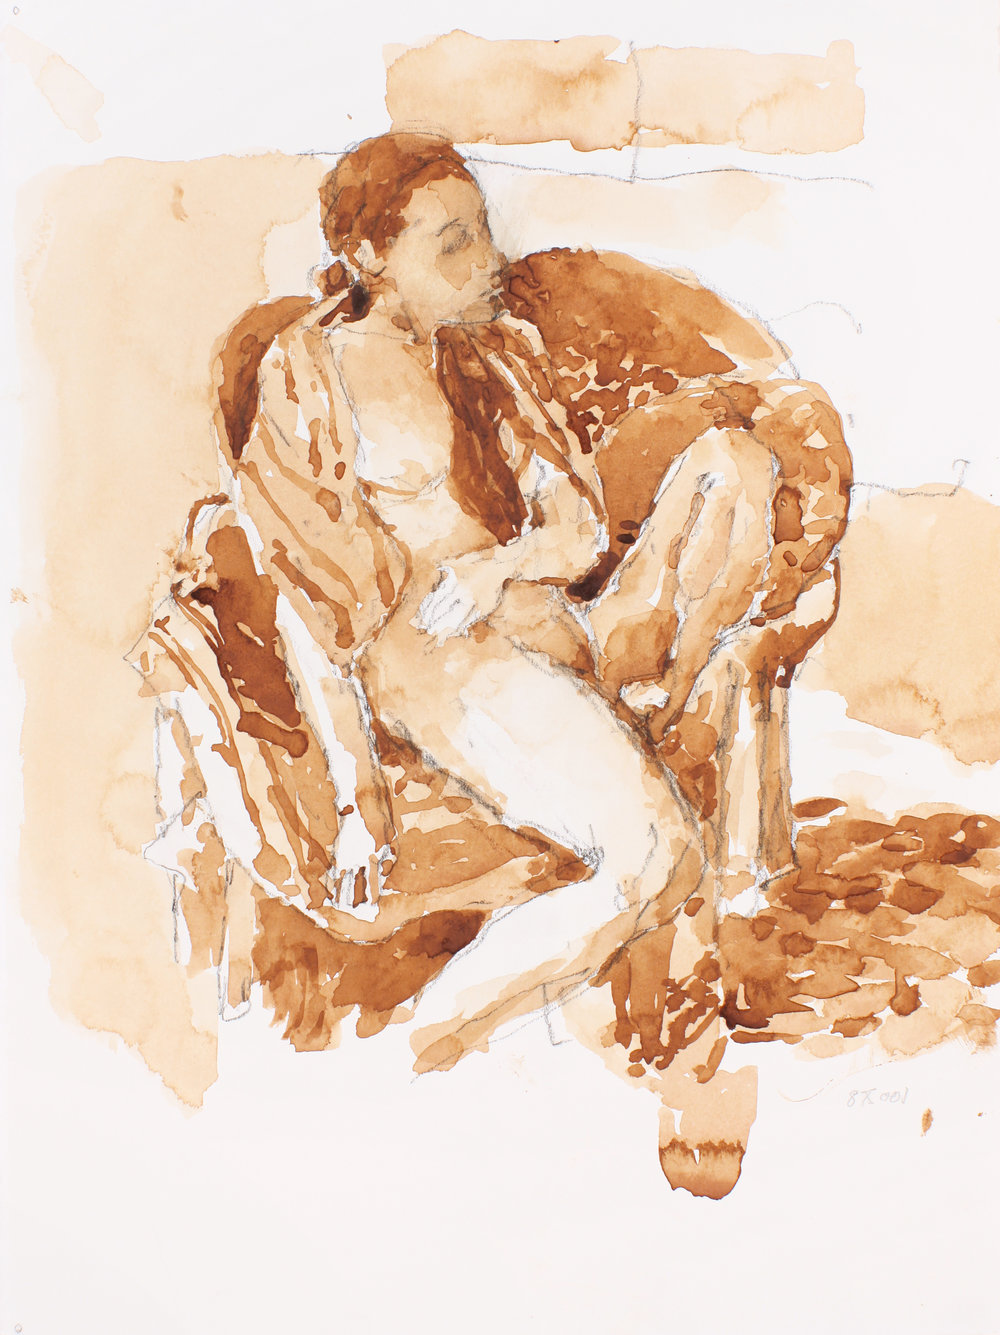 2001_Nude_in_Armchair_with_Scarf_Around_Shoulders_watercolour_and_conté_on_paper_15x11in_WPF203.jpg